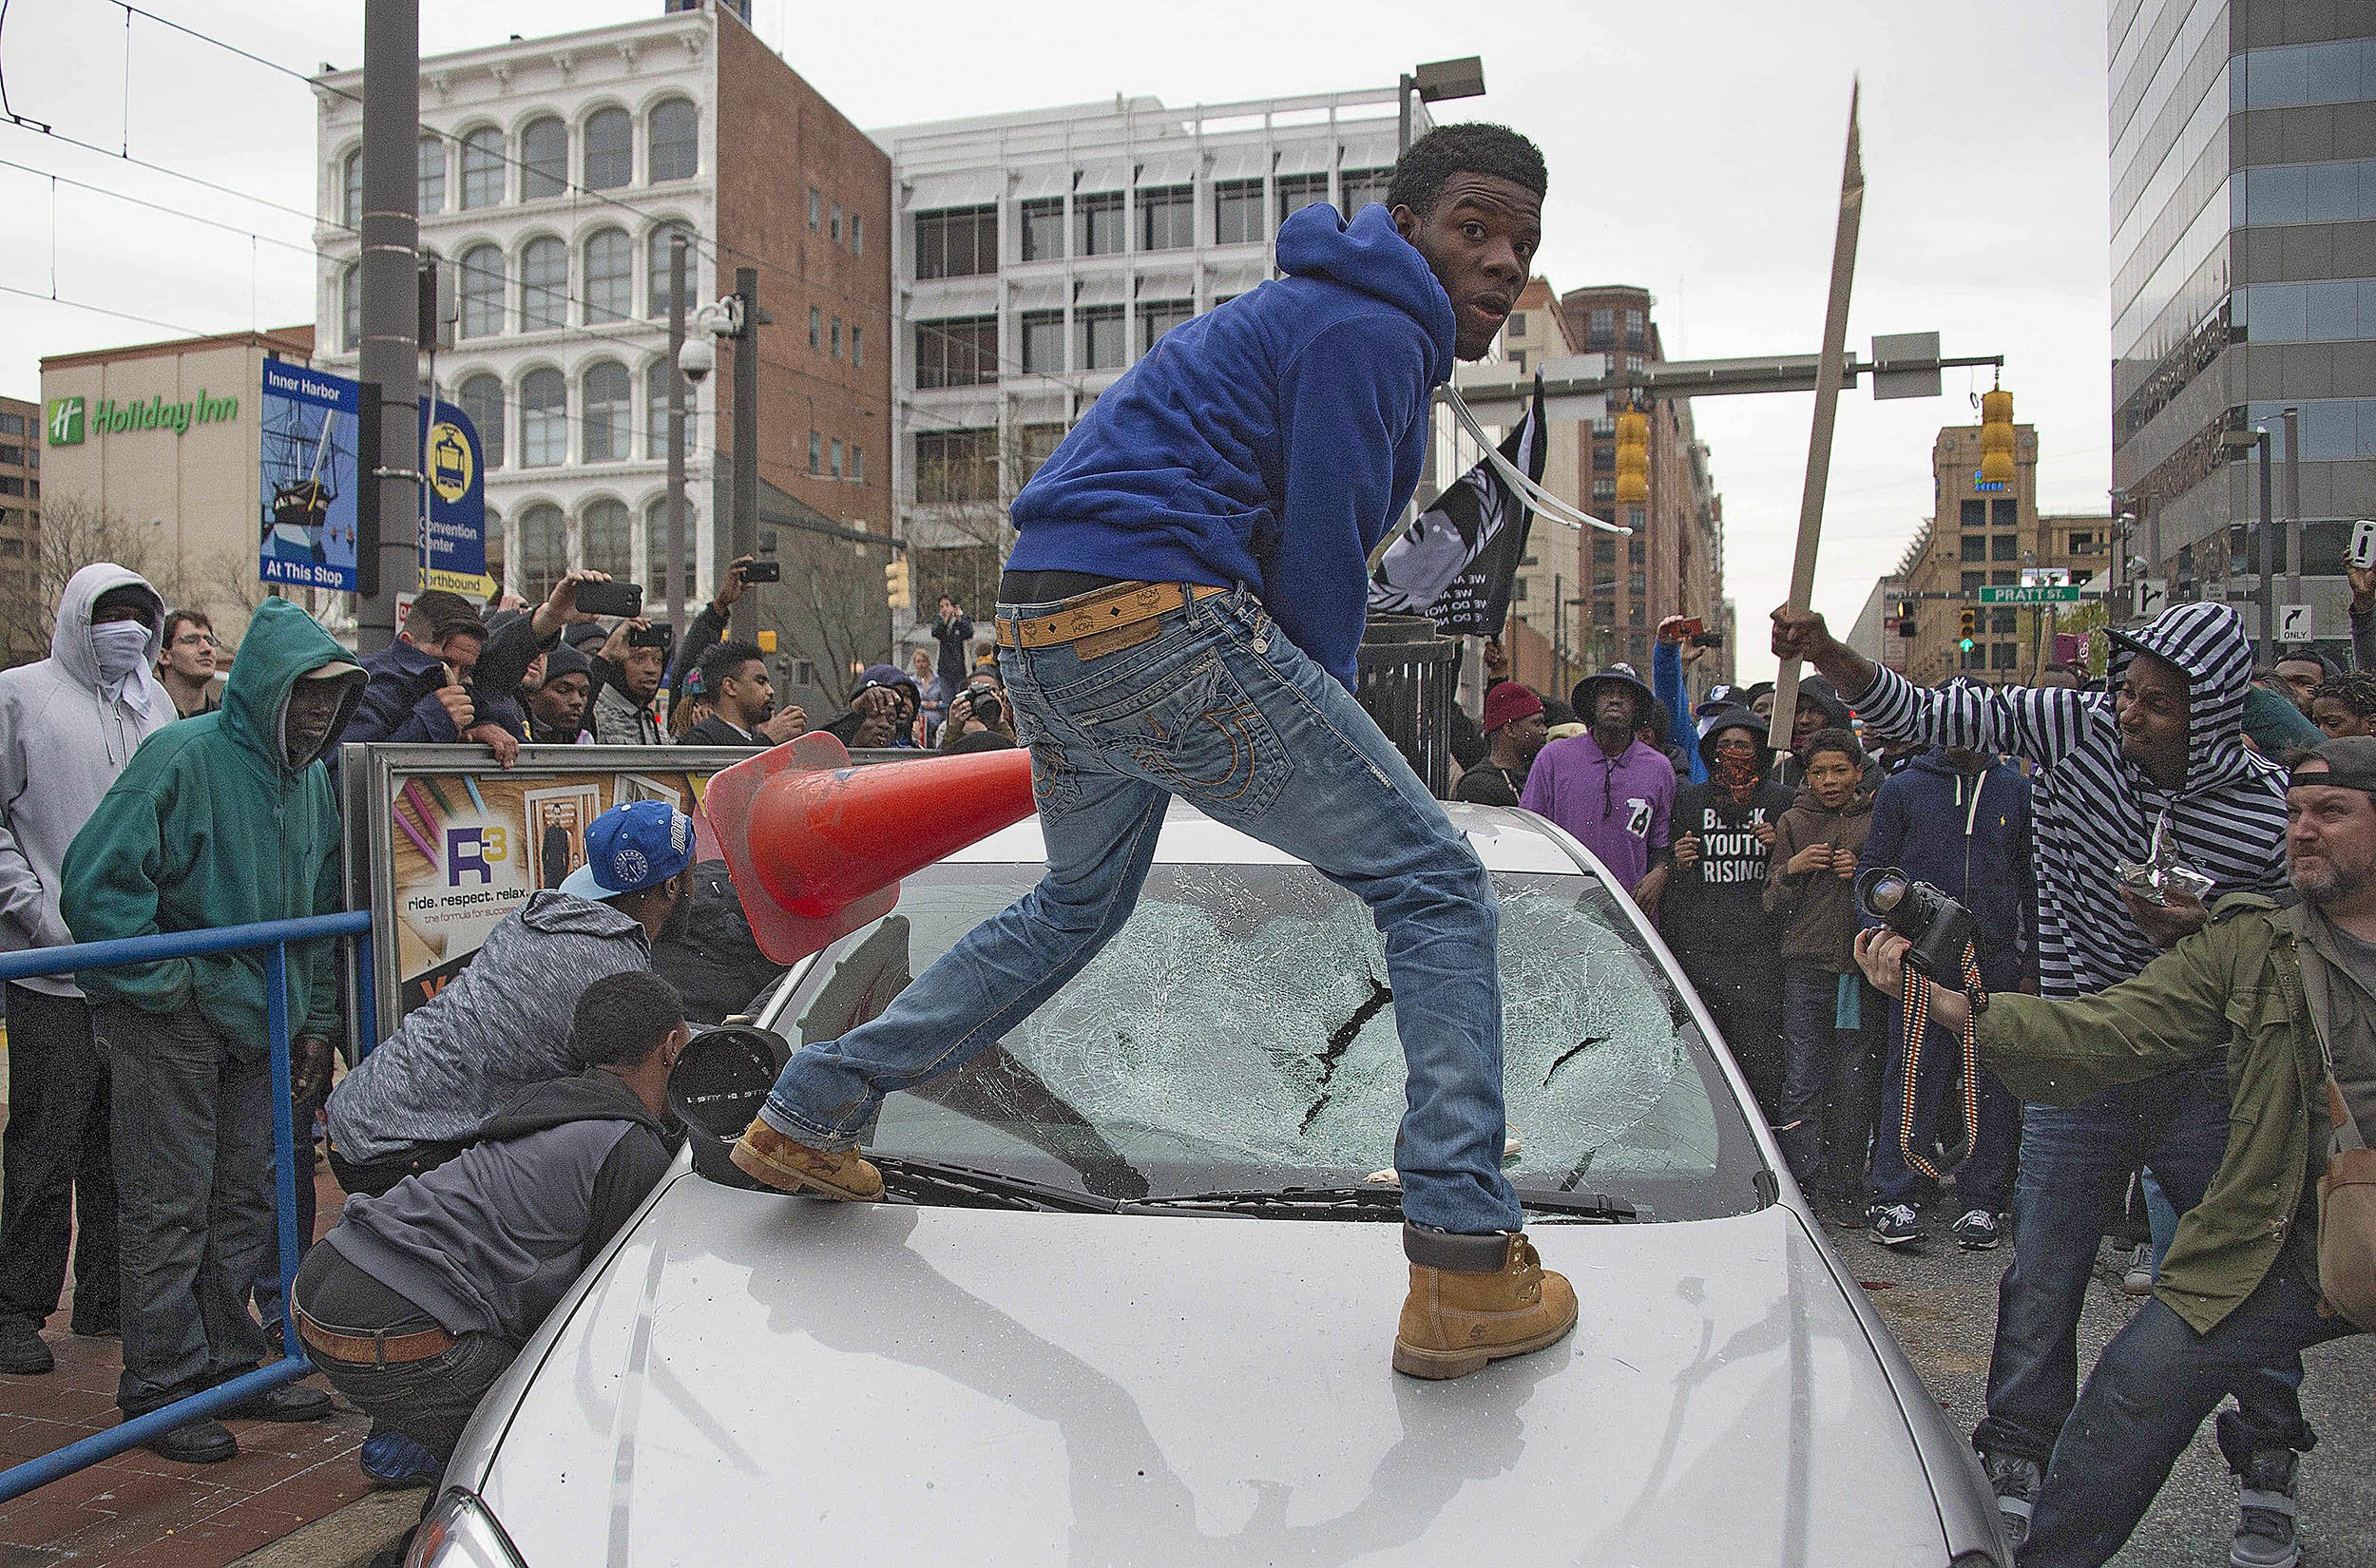 05_01_BaltimoreProtest